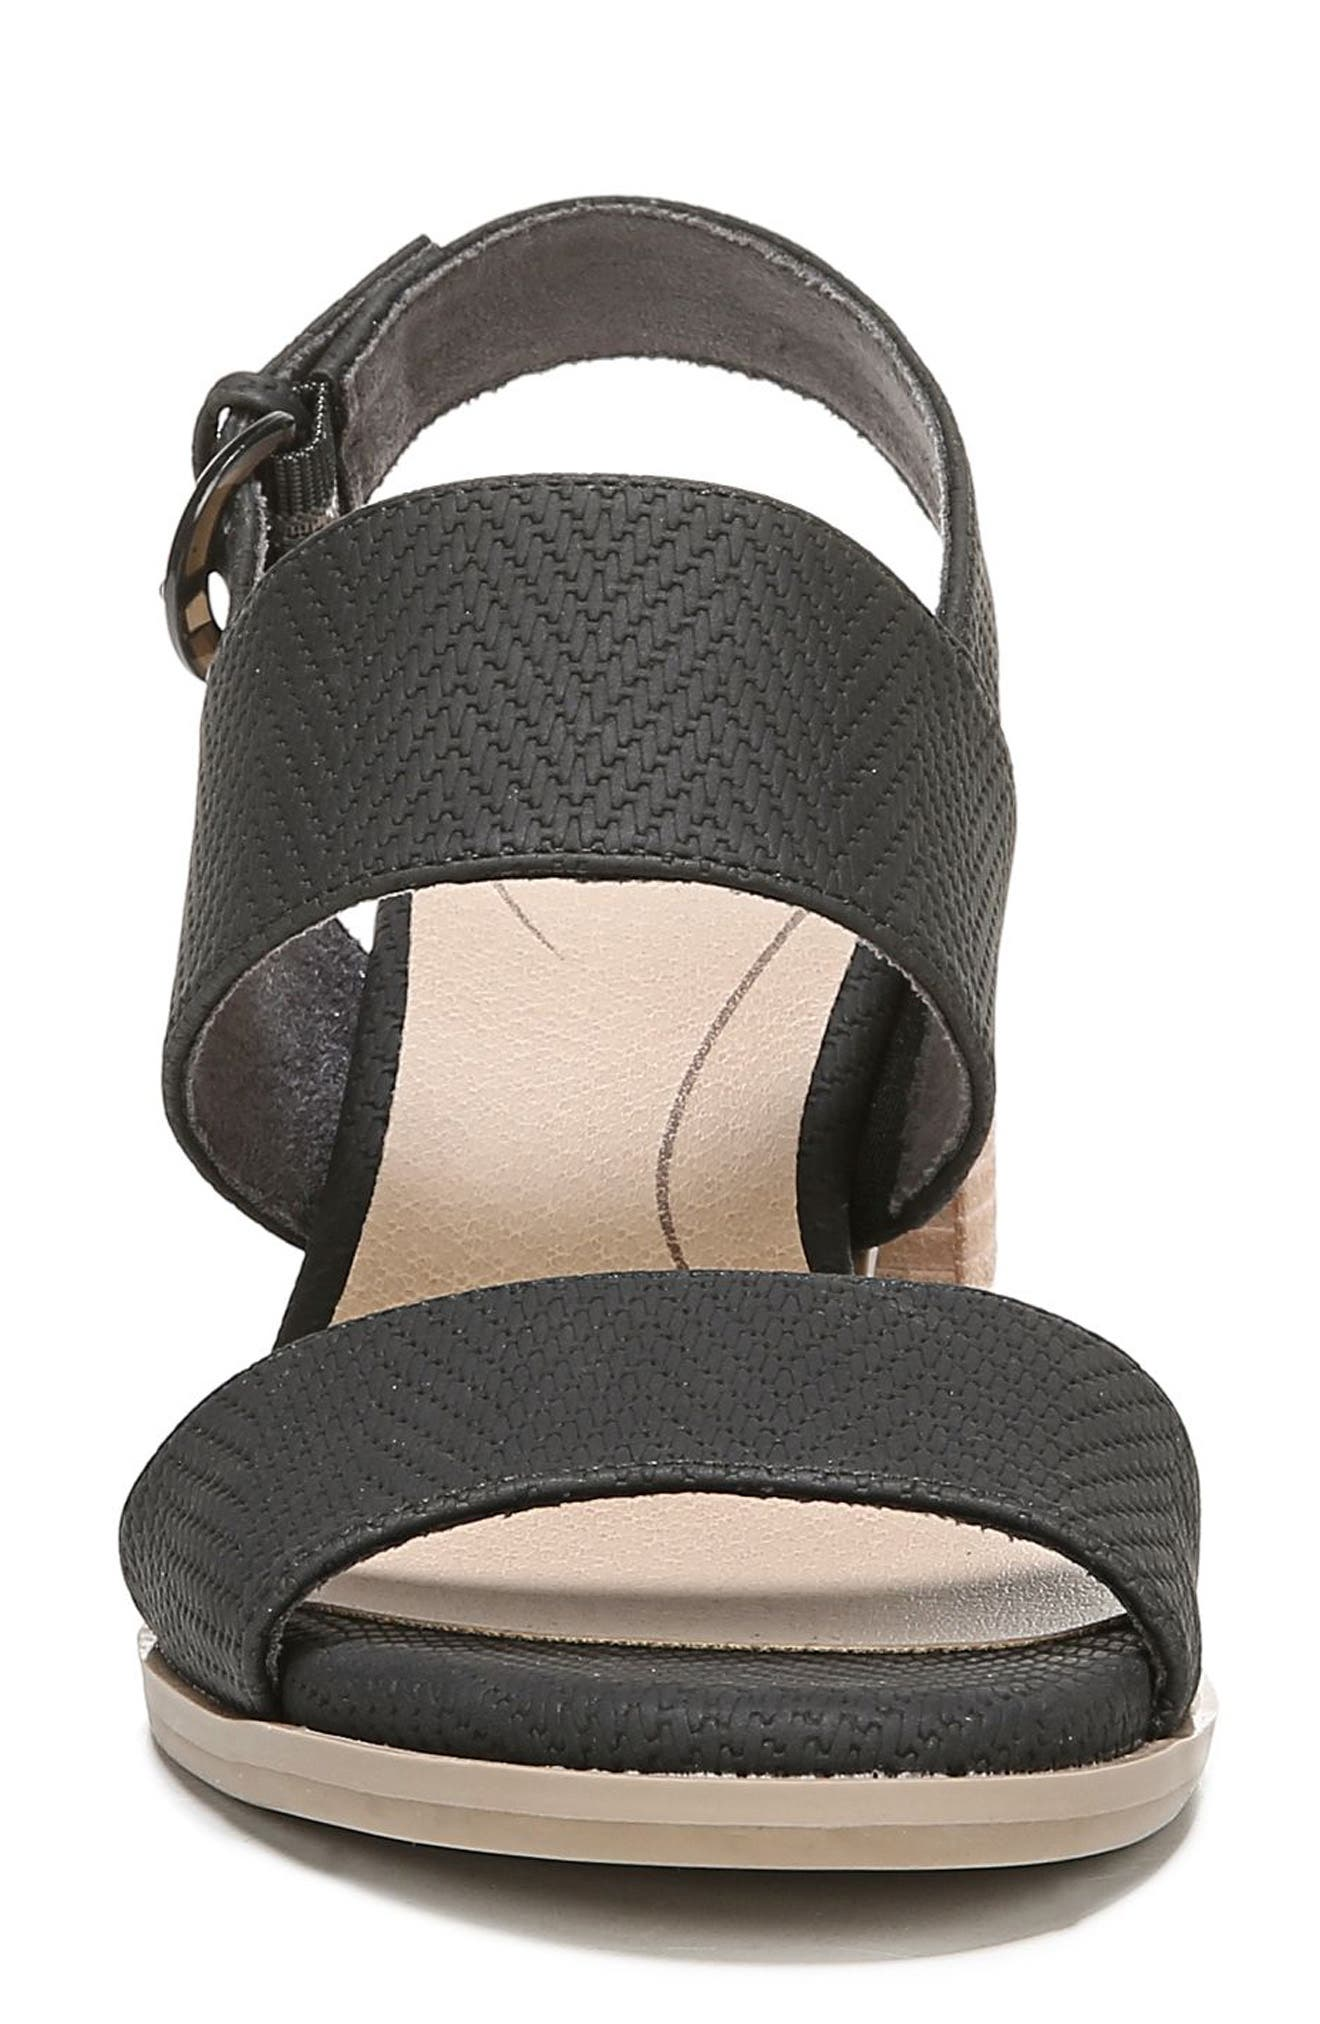 Sure Thing Sandal,                             Alternate thumbnail 4, color,                             BLACK FAUX LEATHER